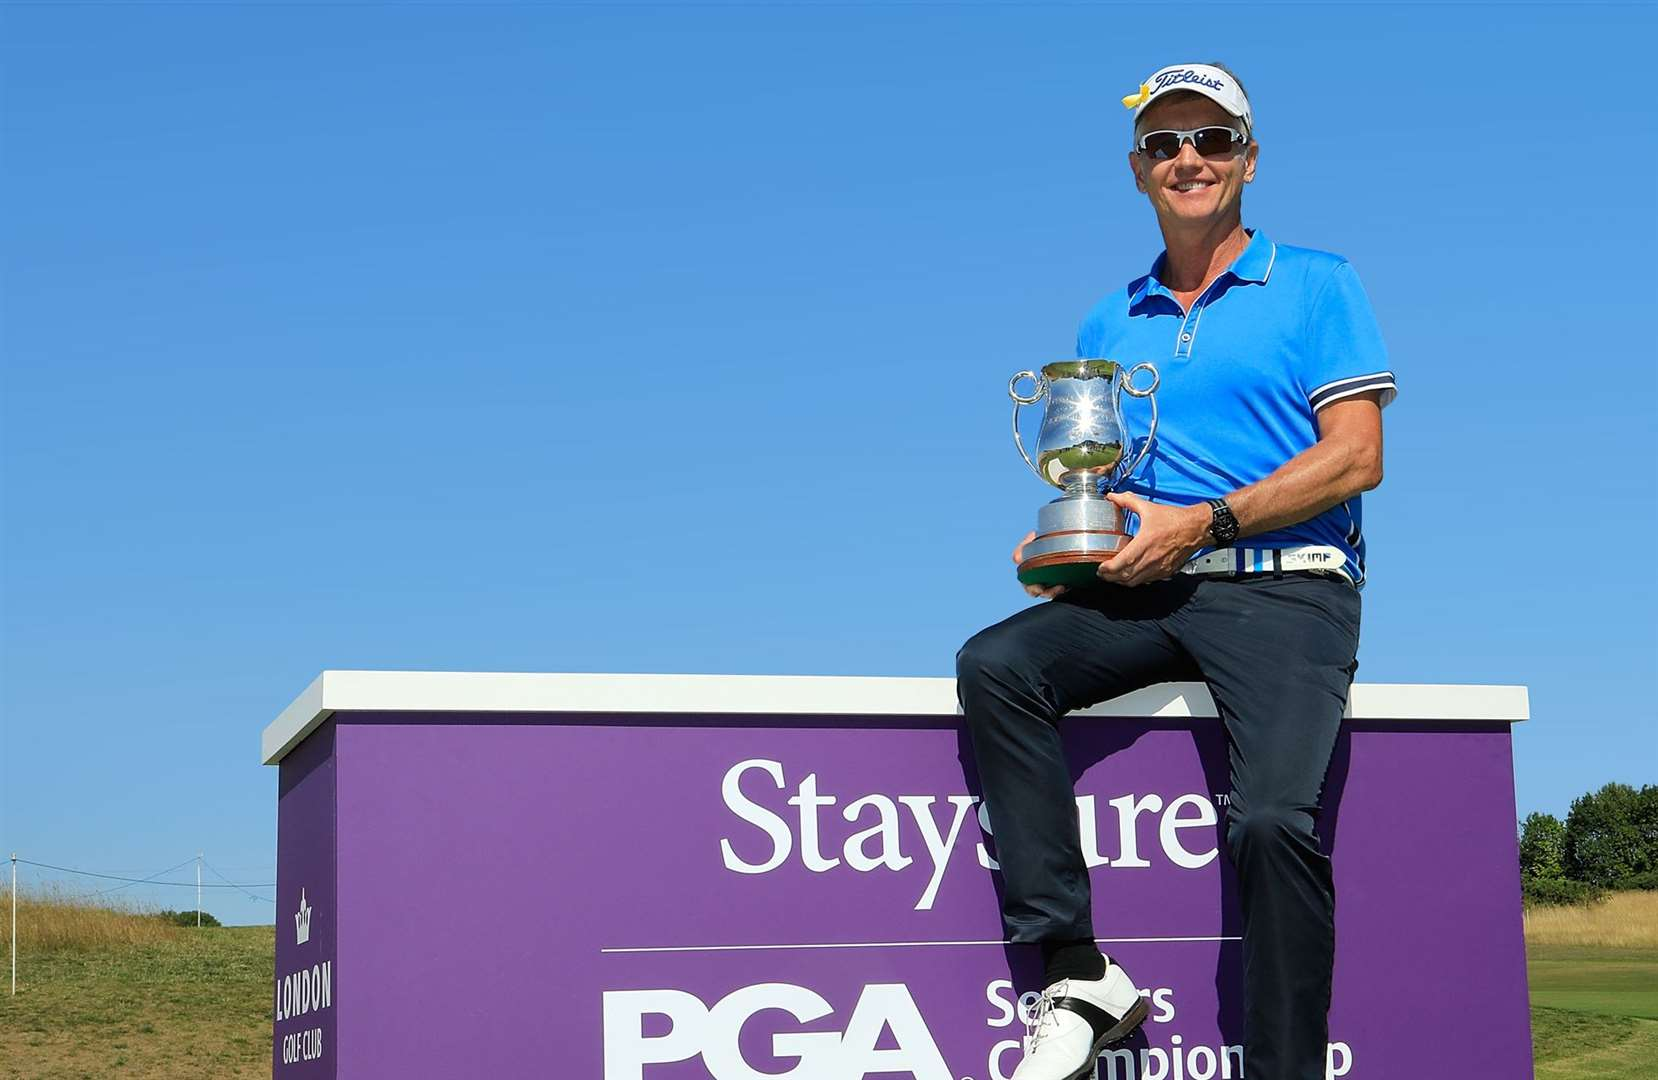 Phil Golding, last year's winner of the PGA Seniors Championship